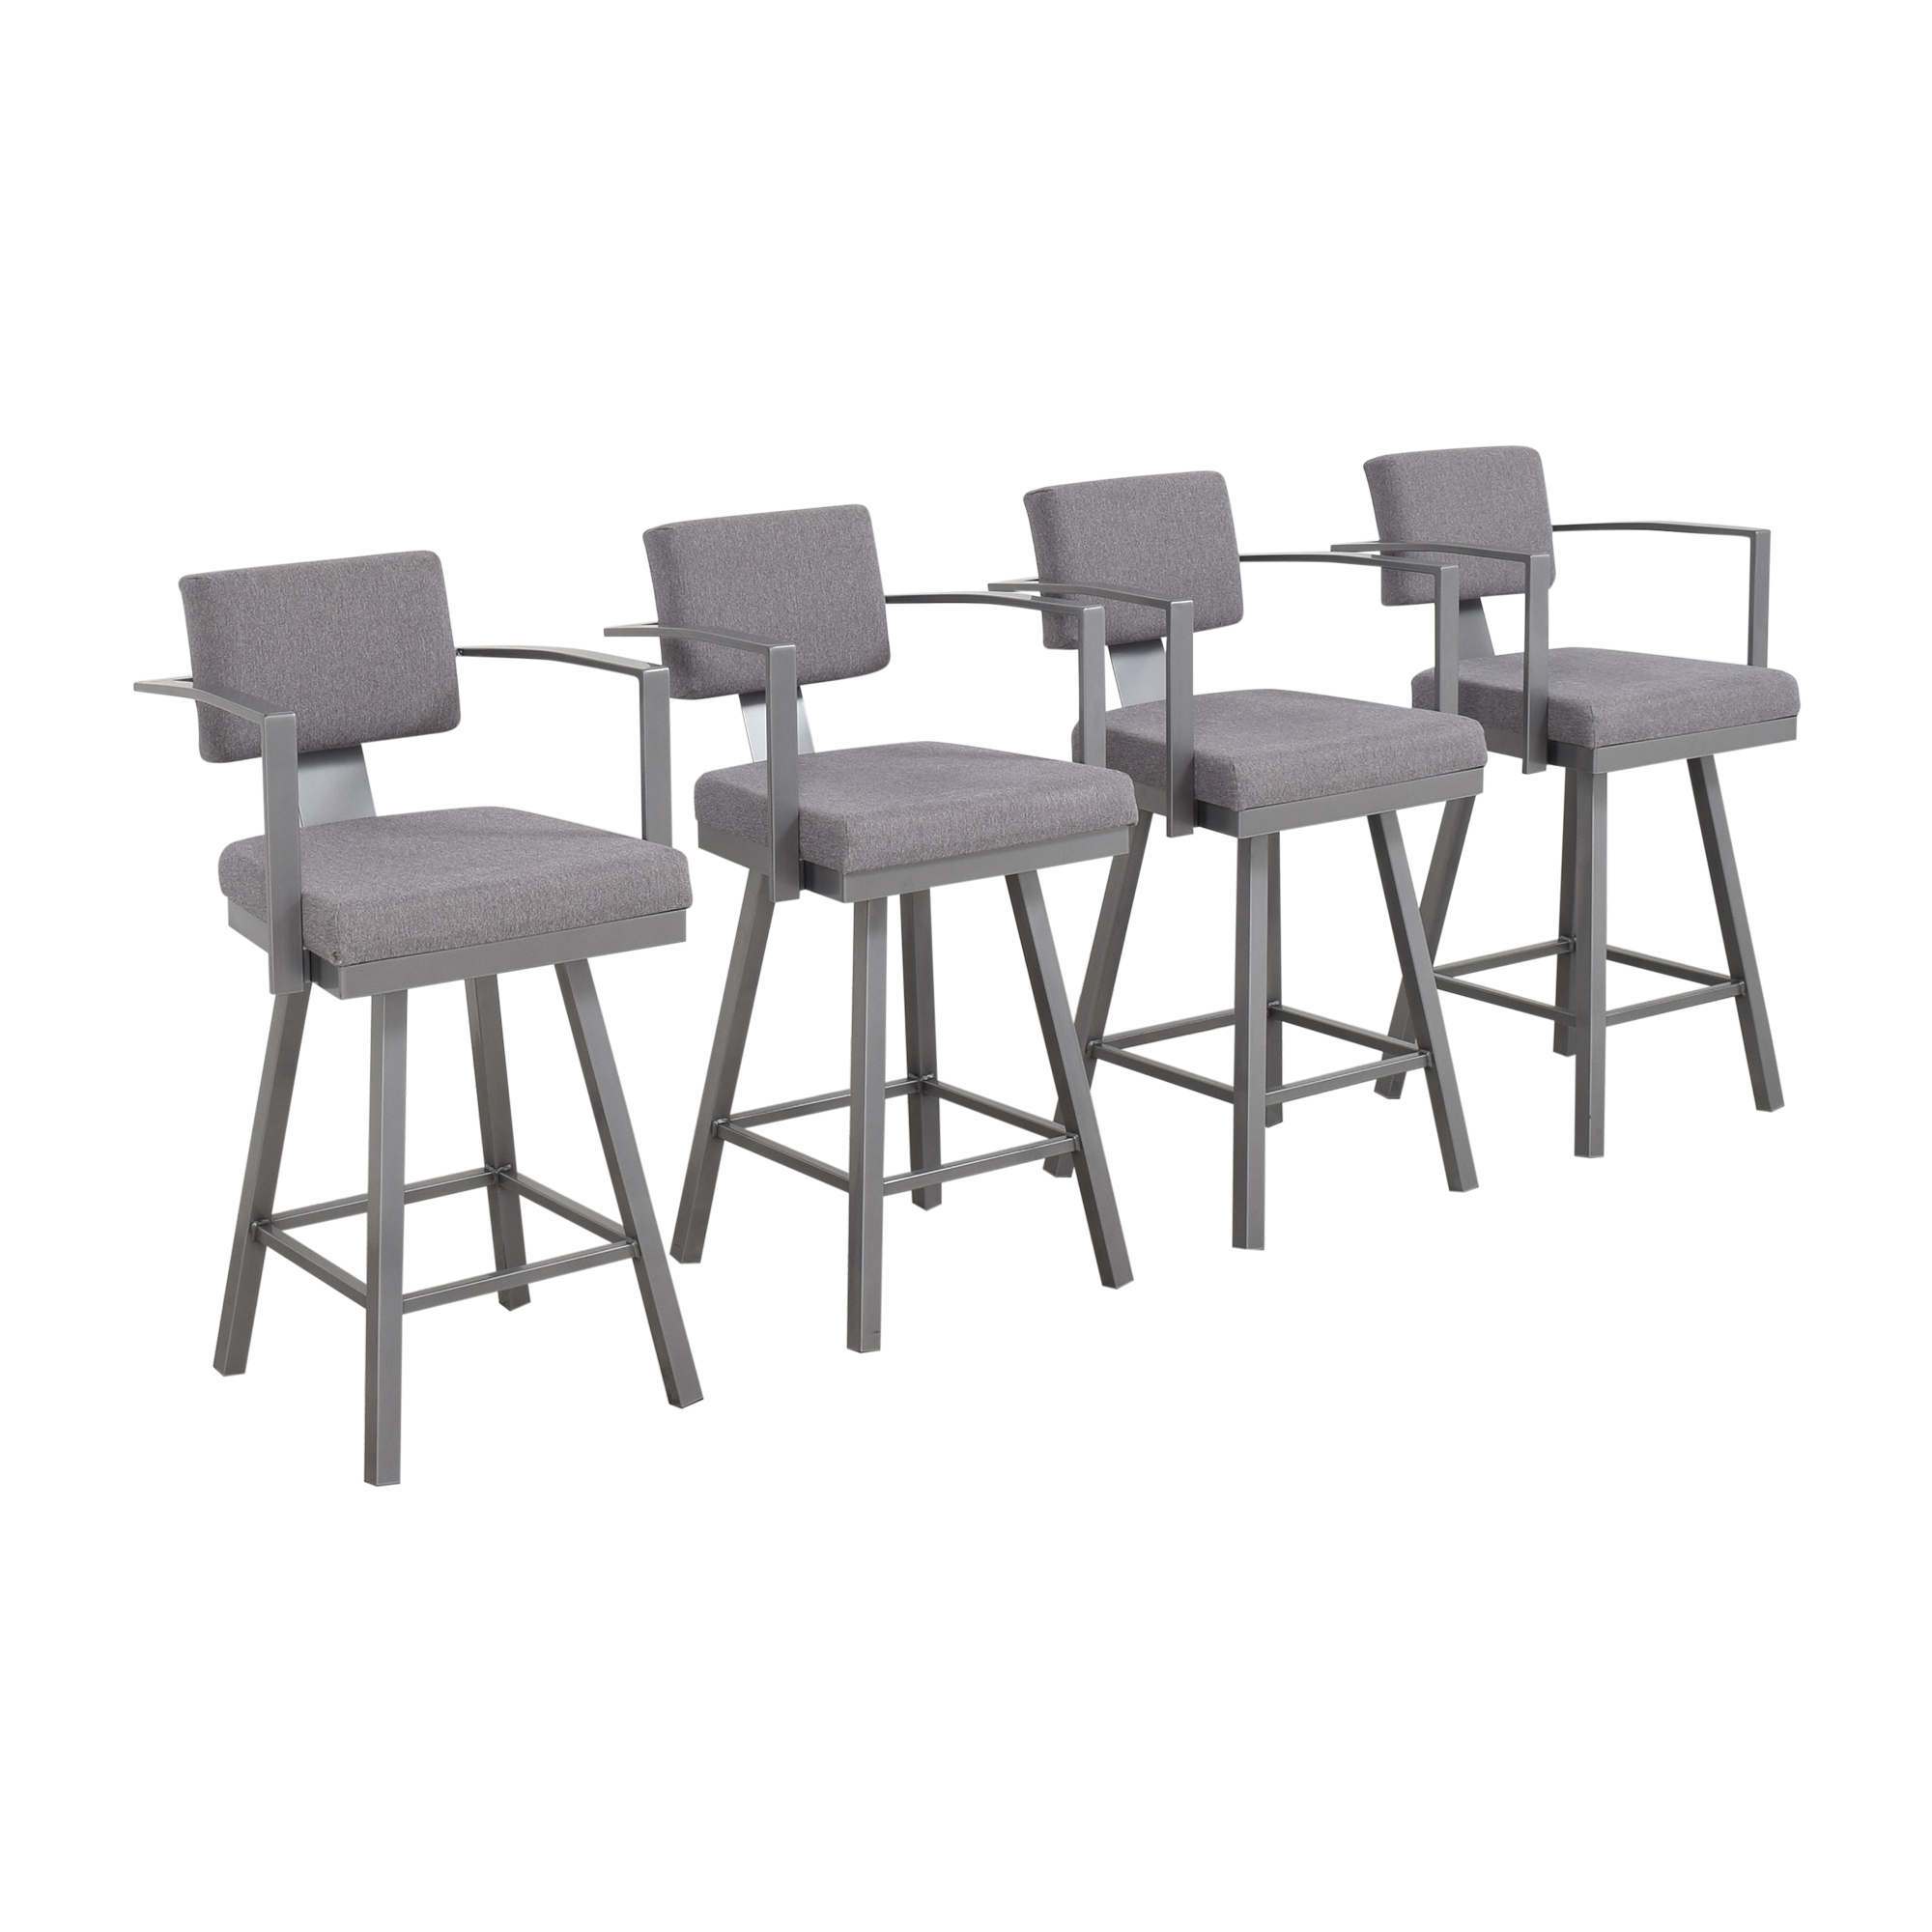 Amisco Akers Counter Stools sale